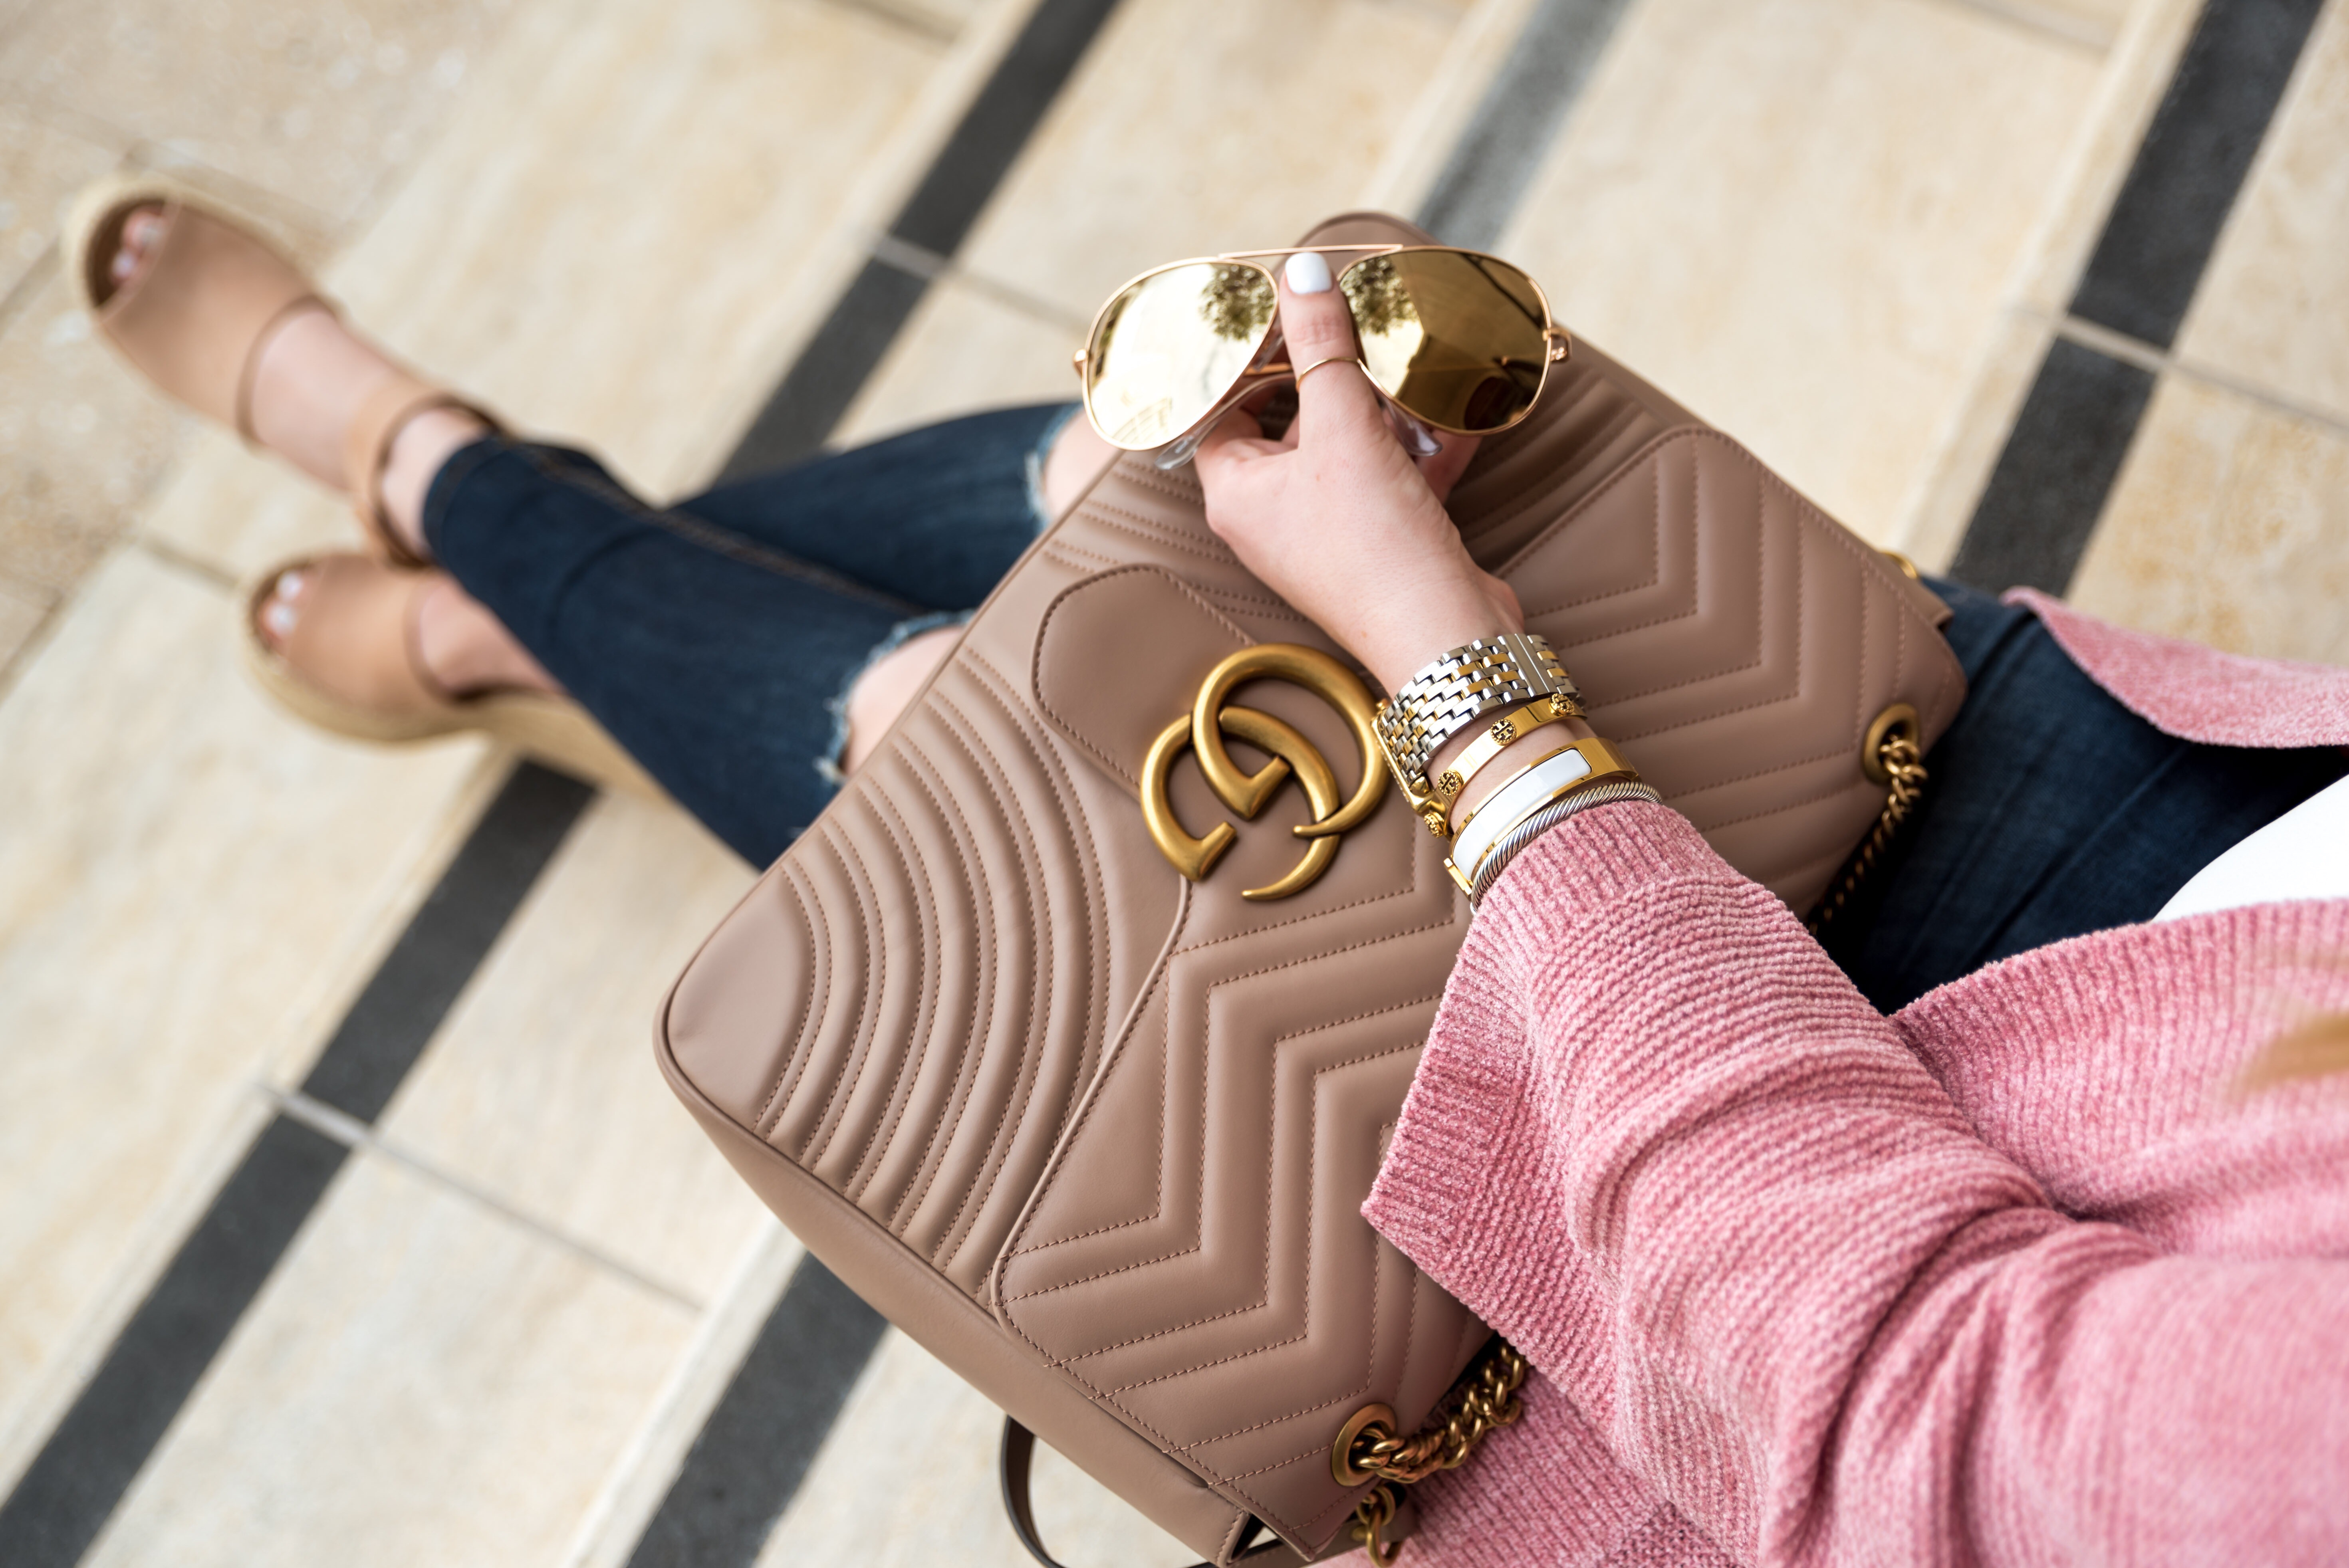 565b3b30cfca GG Marmont Large Chevron Quilted Leather Shoulder Bag Gucci Fancy Things - Fancy  Things